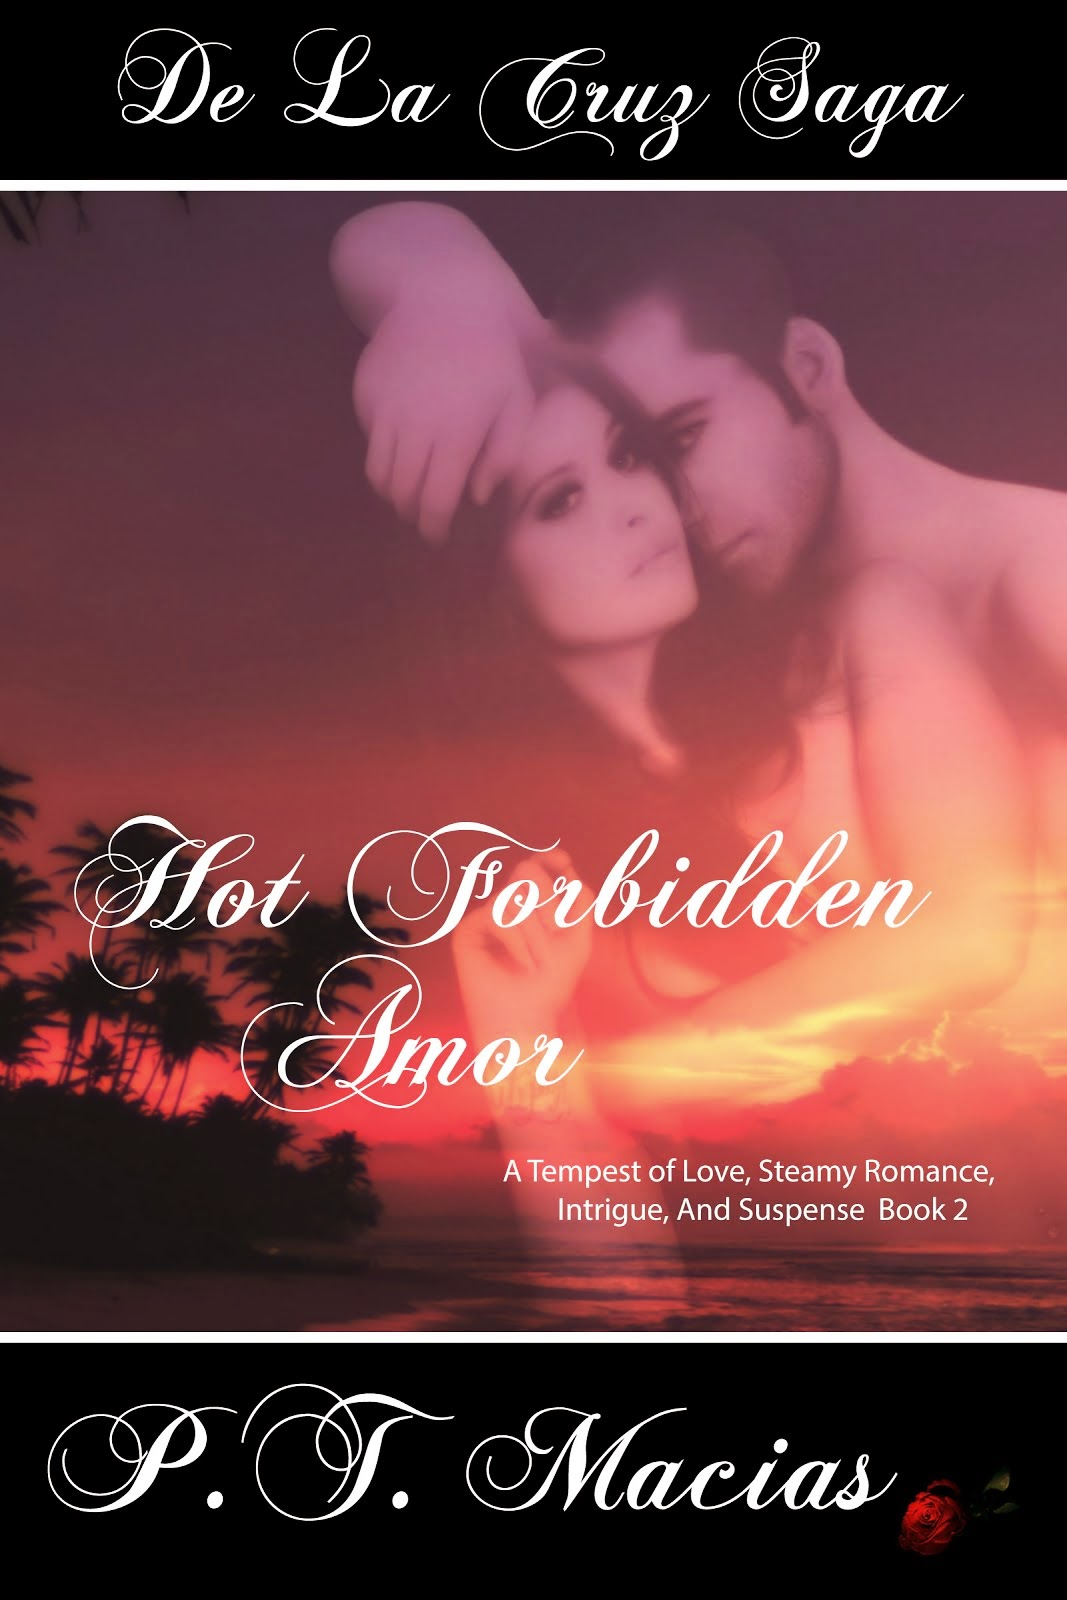 Hot Forbidden Amor, De La Cruz Saga Book 2